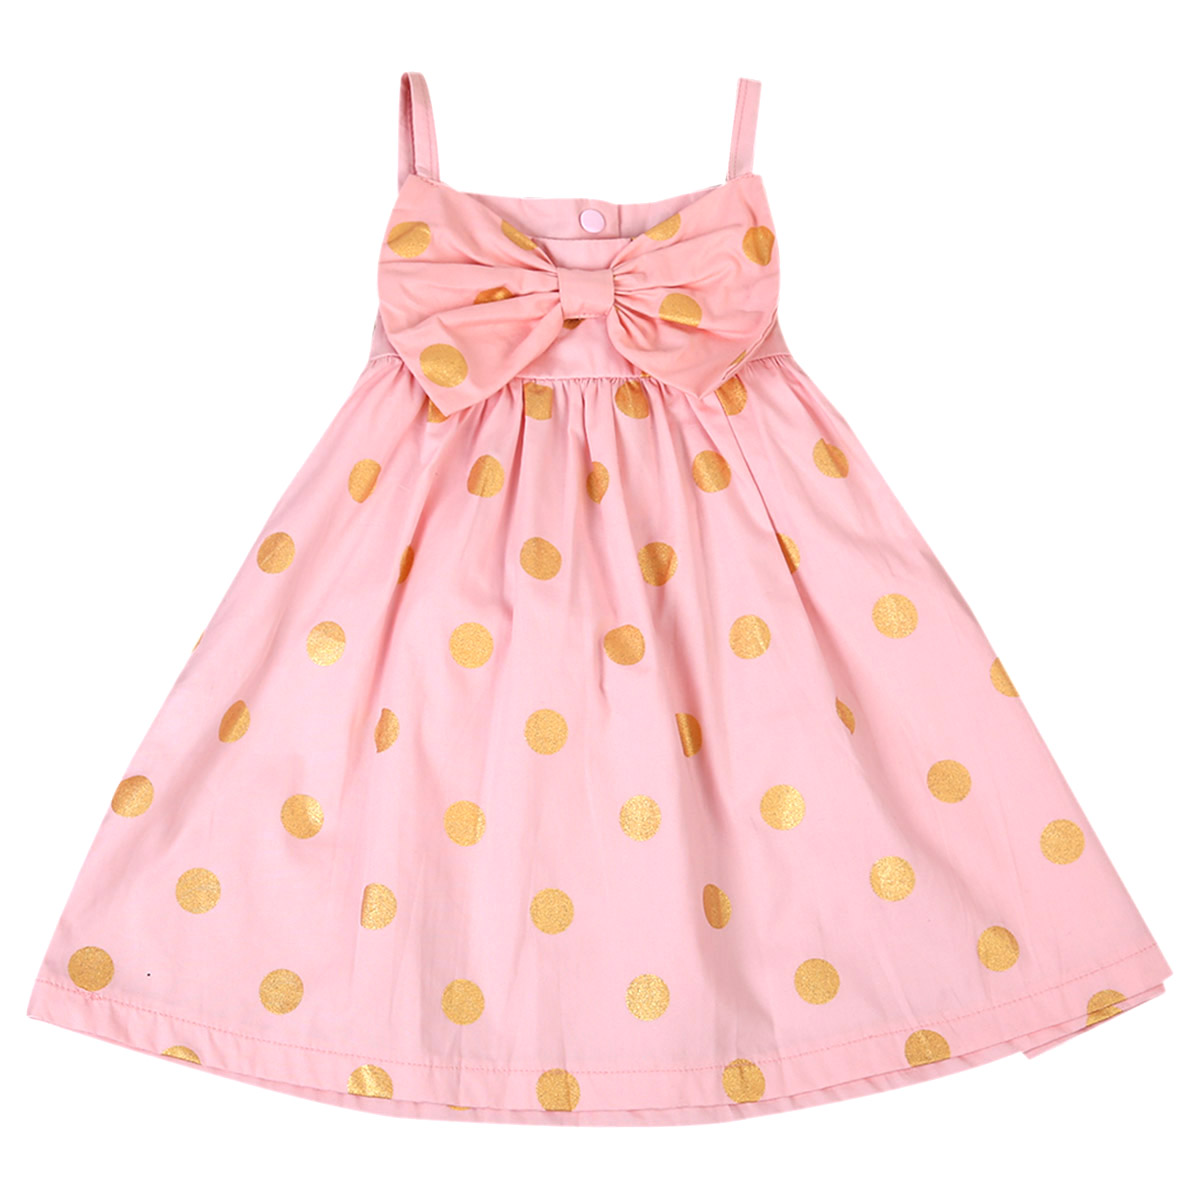 pudcoco 2017 Toddler Kids Baby Girls Cute Big Bowknot Golden Dots Sundress Summer Pageant Princess Party